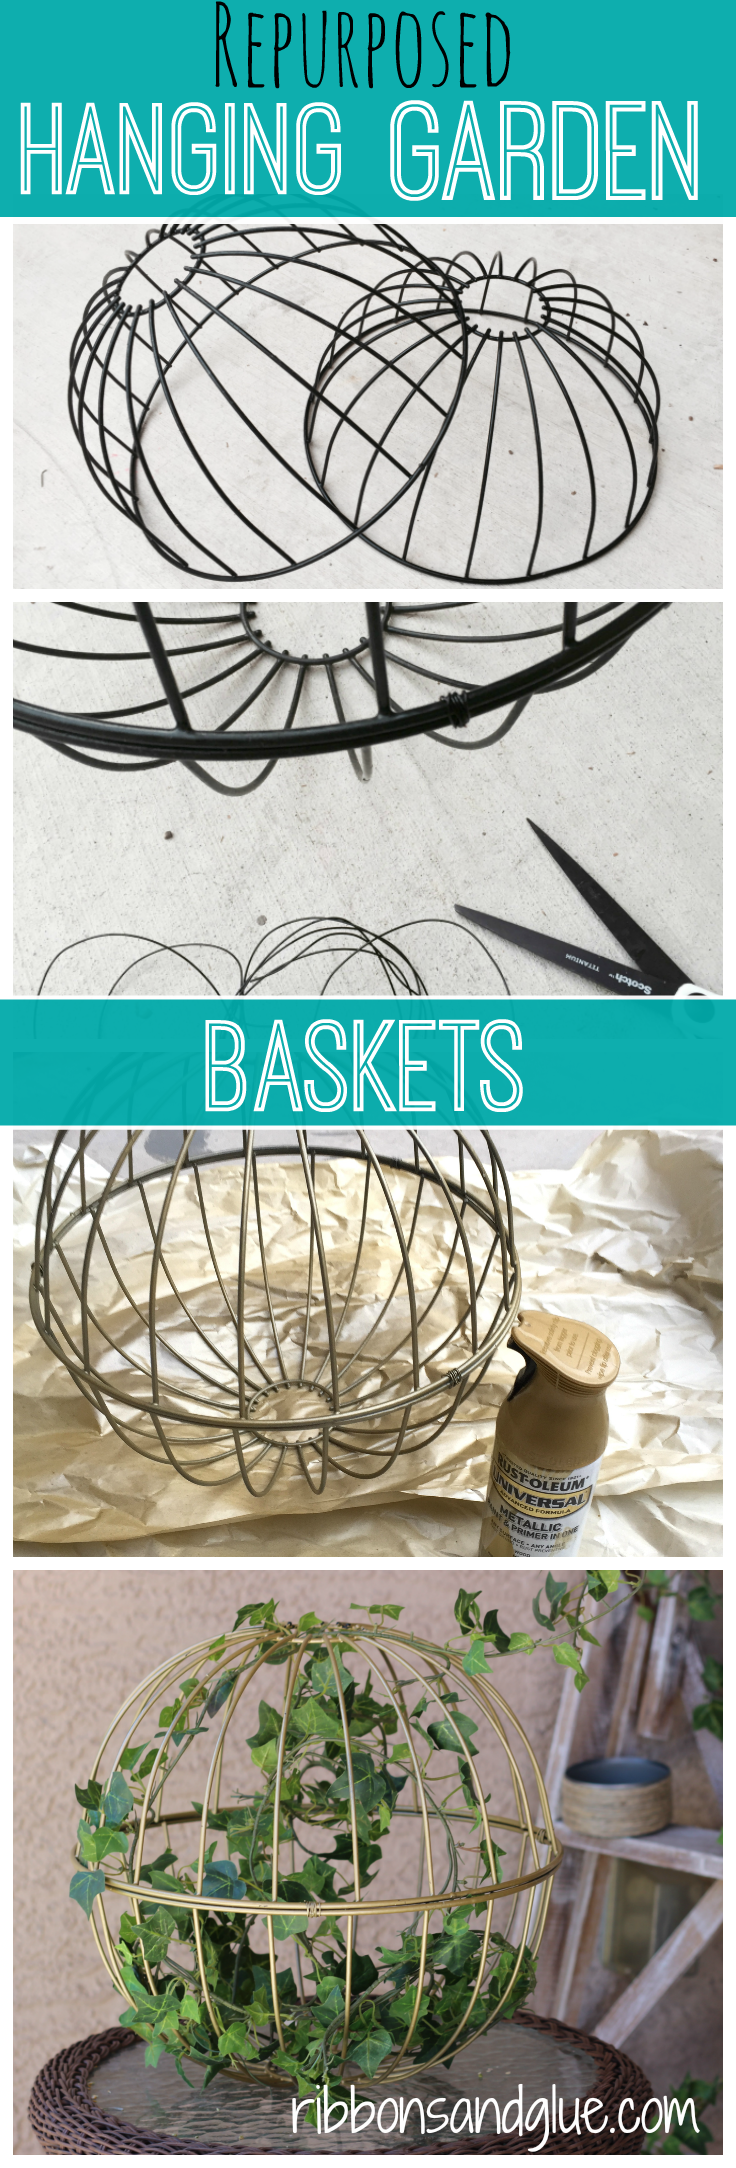 Repurposed Garden Baskets Pin